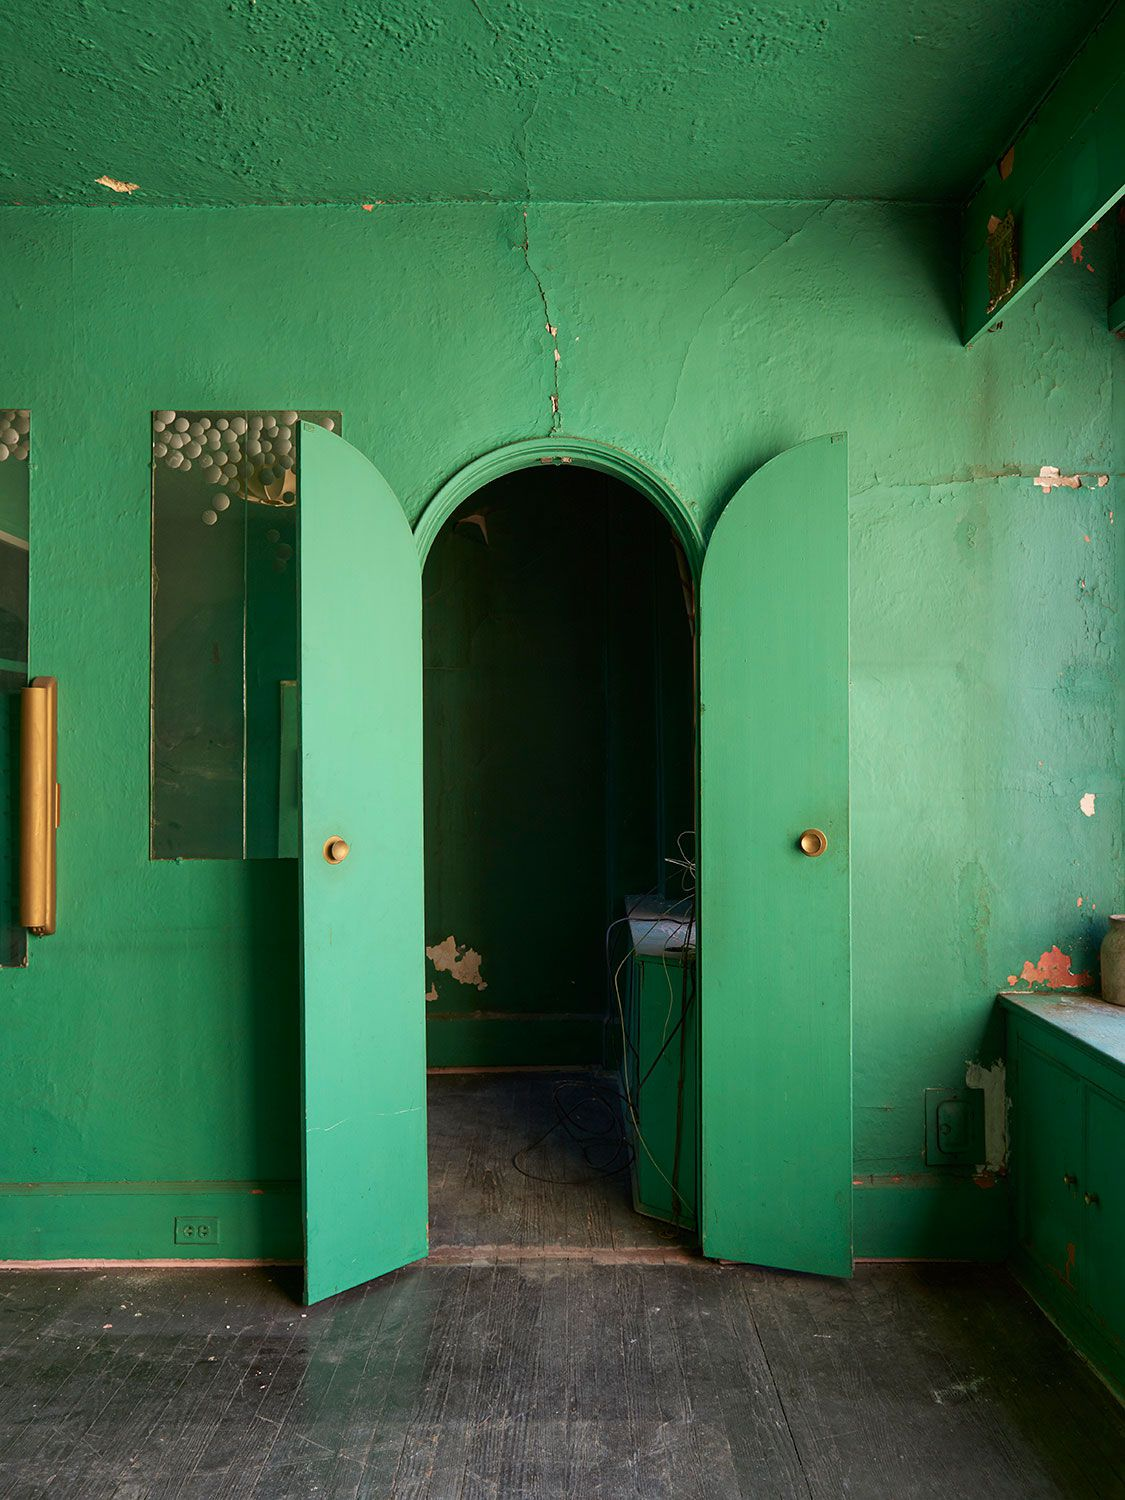 A room with hardwood floors with an arched doorway, all painted in bright green.